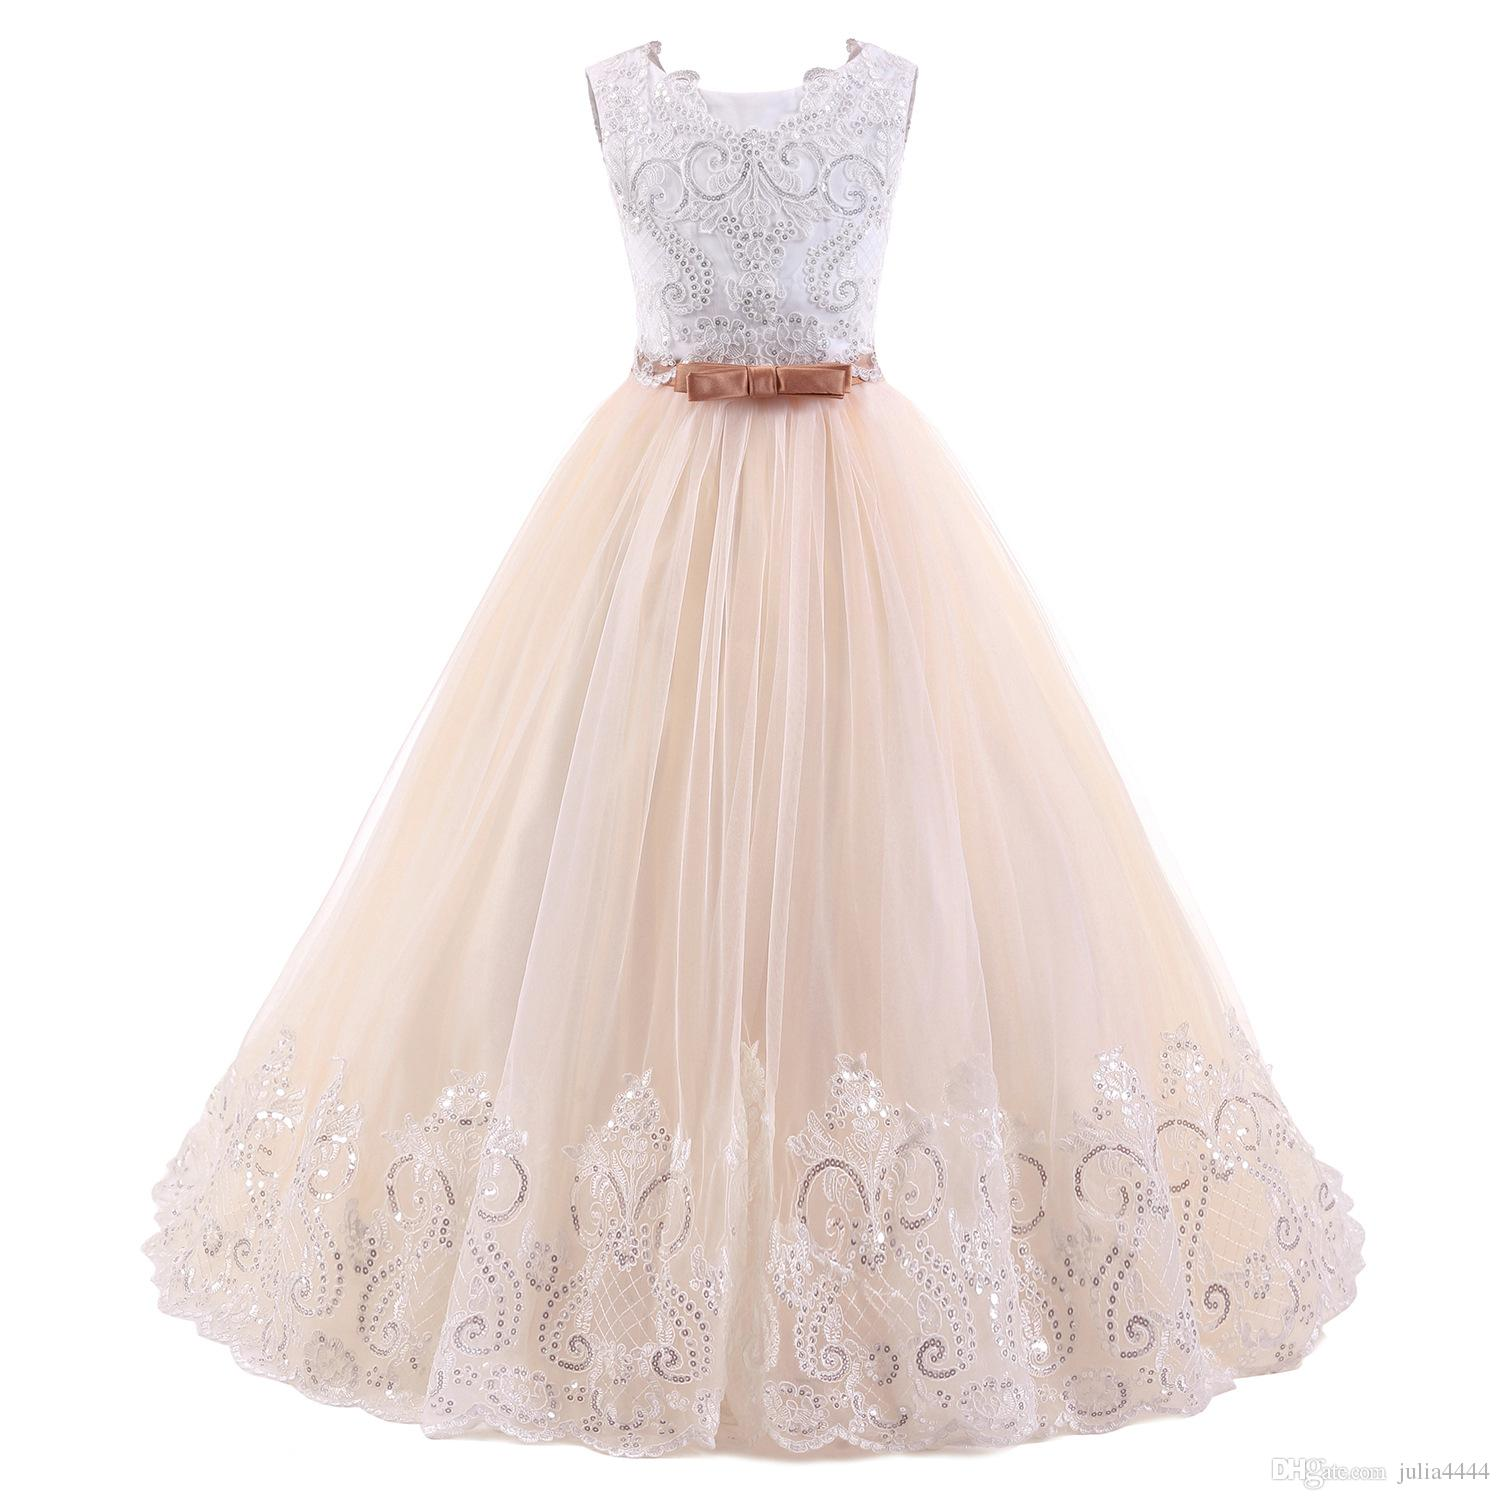 Flower Girl Dresses for Wedding Blush Pink Princess Tutu Sequined Appliqued Lace Bow 2019 Vintage Child First Communion Dress Custom Made